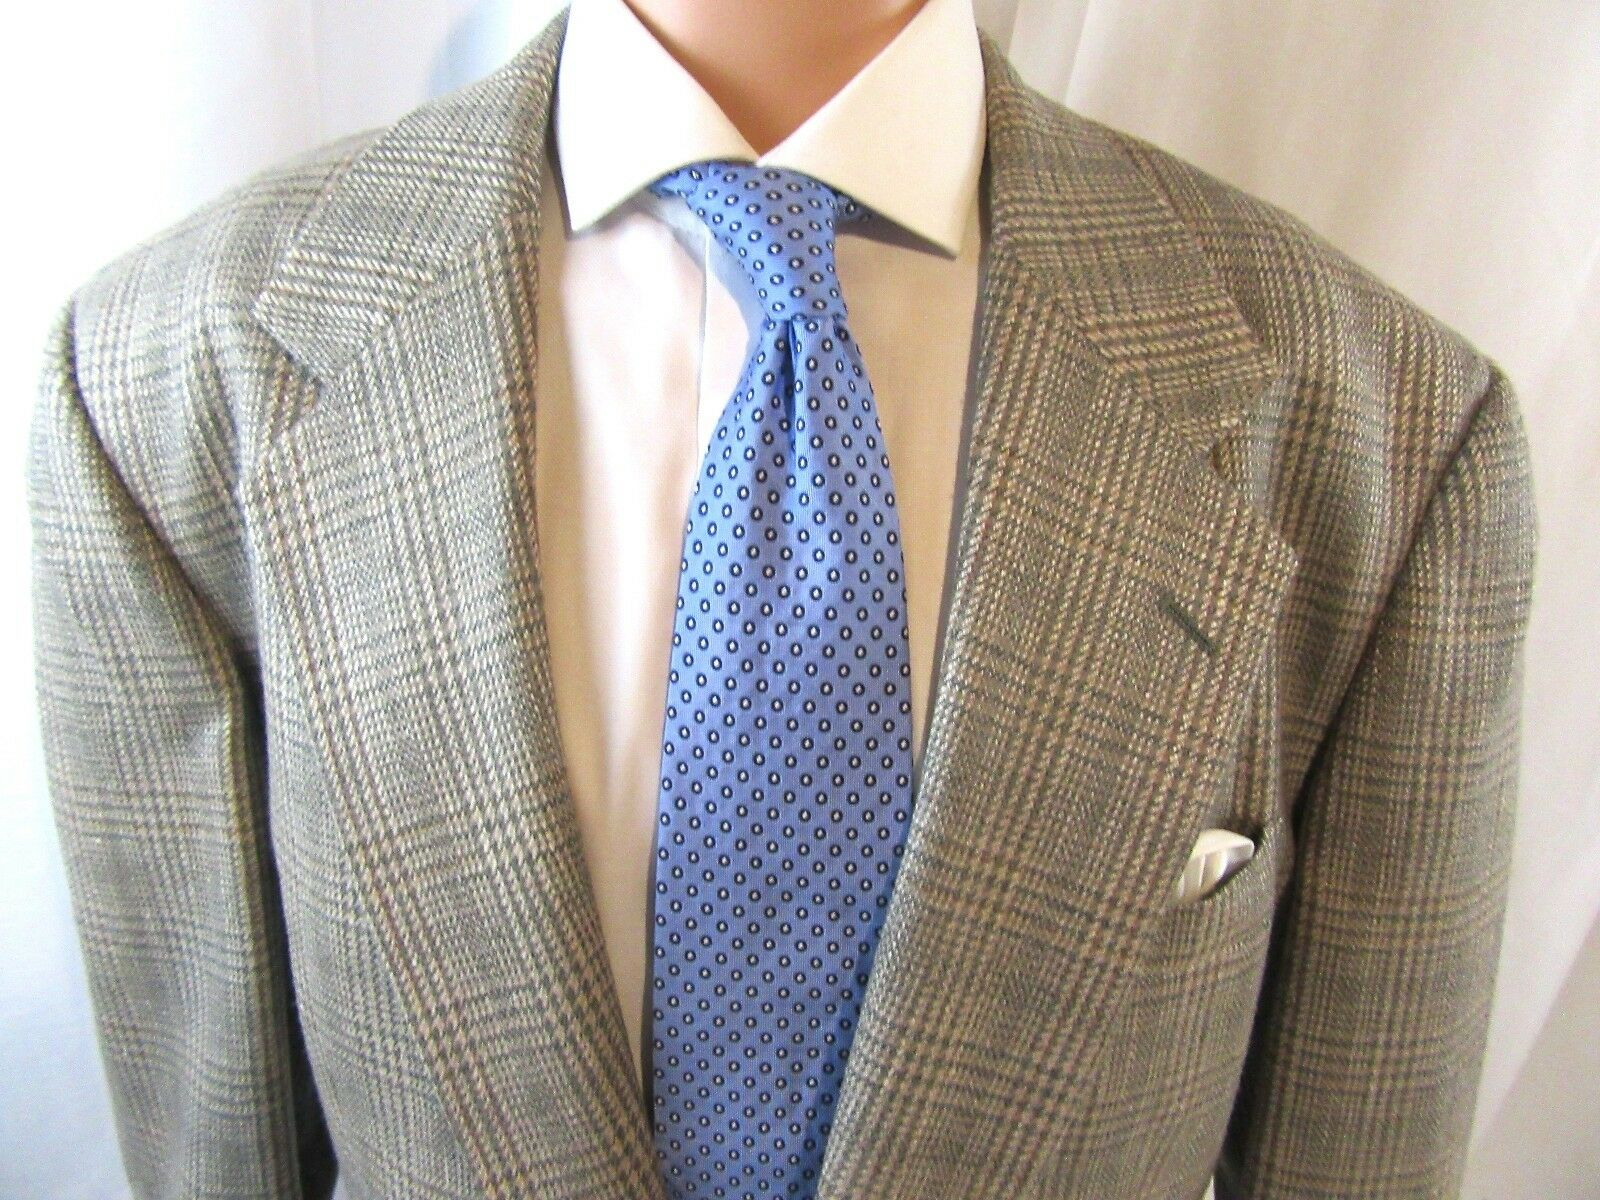 Mens Saks Fifth Avenue Perry Ellis Wool Silk Blazer, Sport Coat, grey taupe 46 R